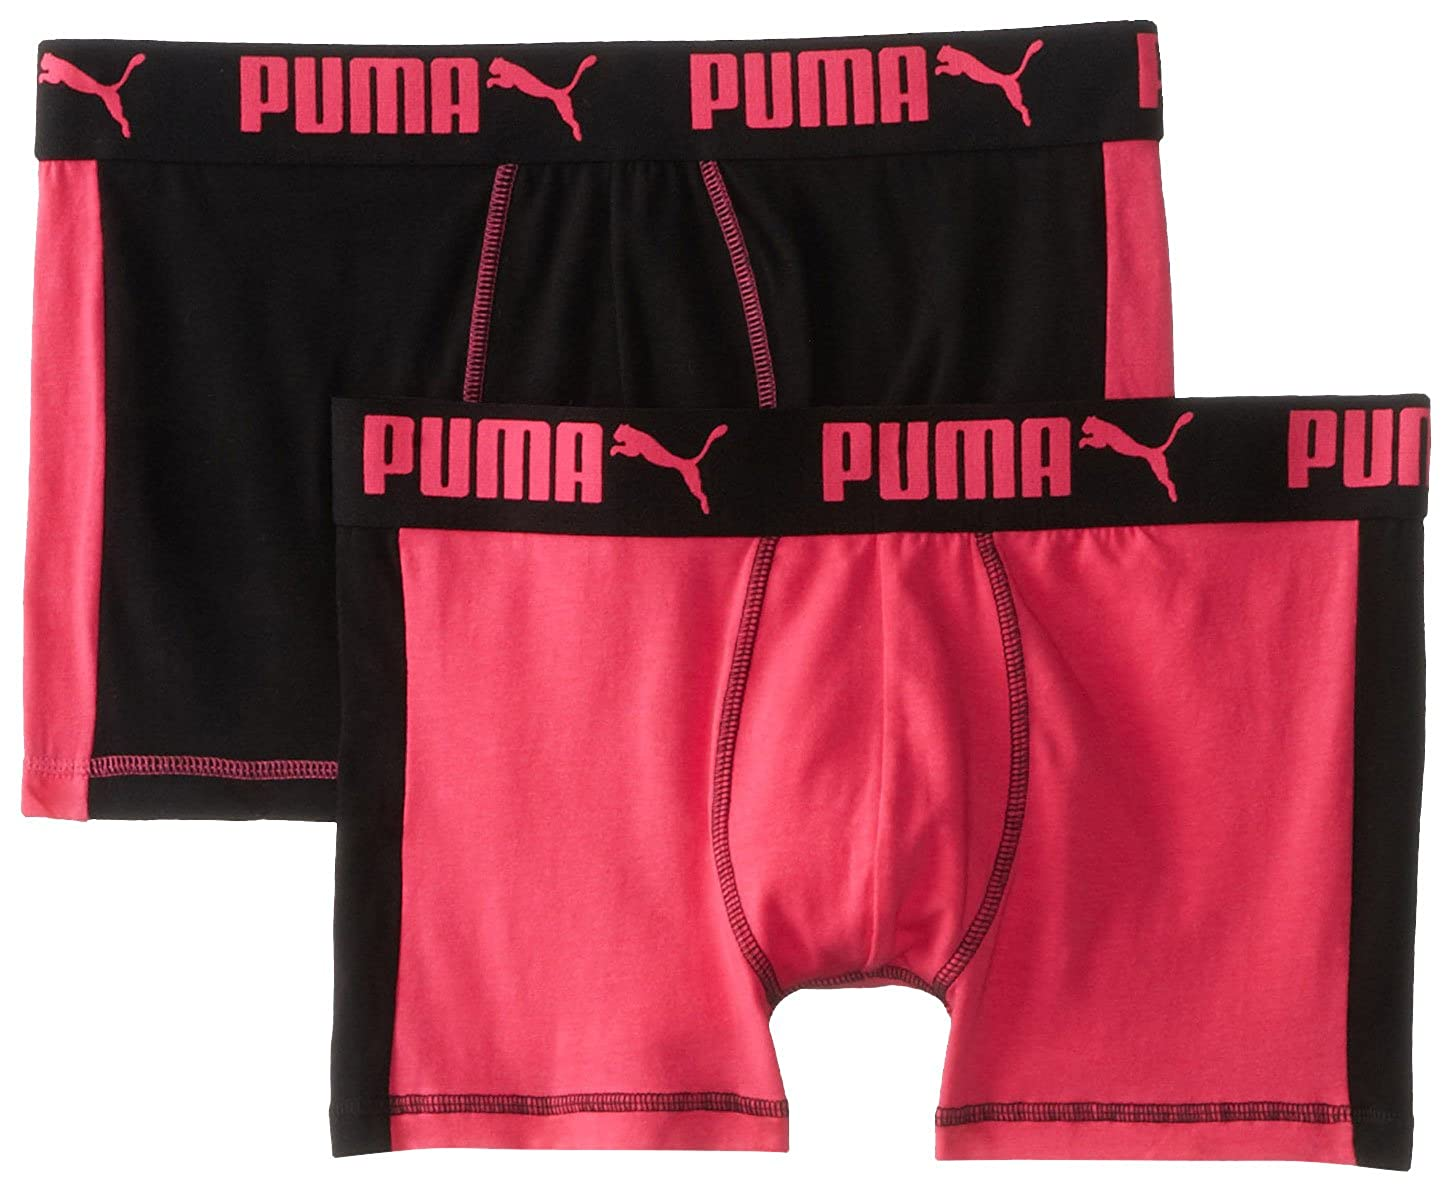 PUMA Mens 2-Pack Cotton Trunk Pink//Black Large Puma Men/'s Underwear PUMSS1411640